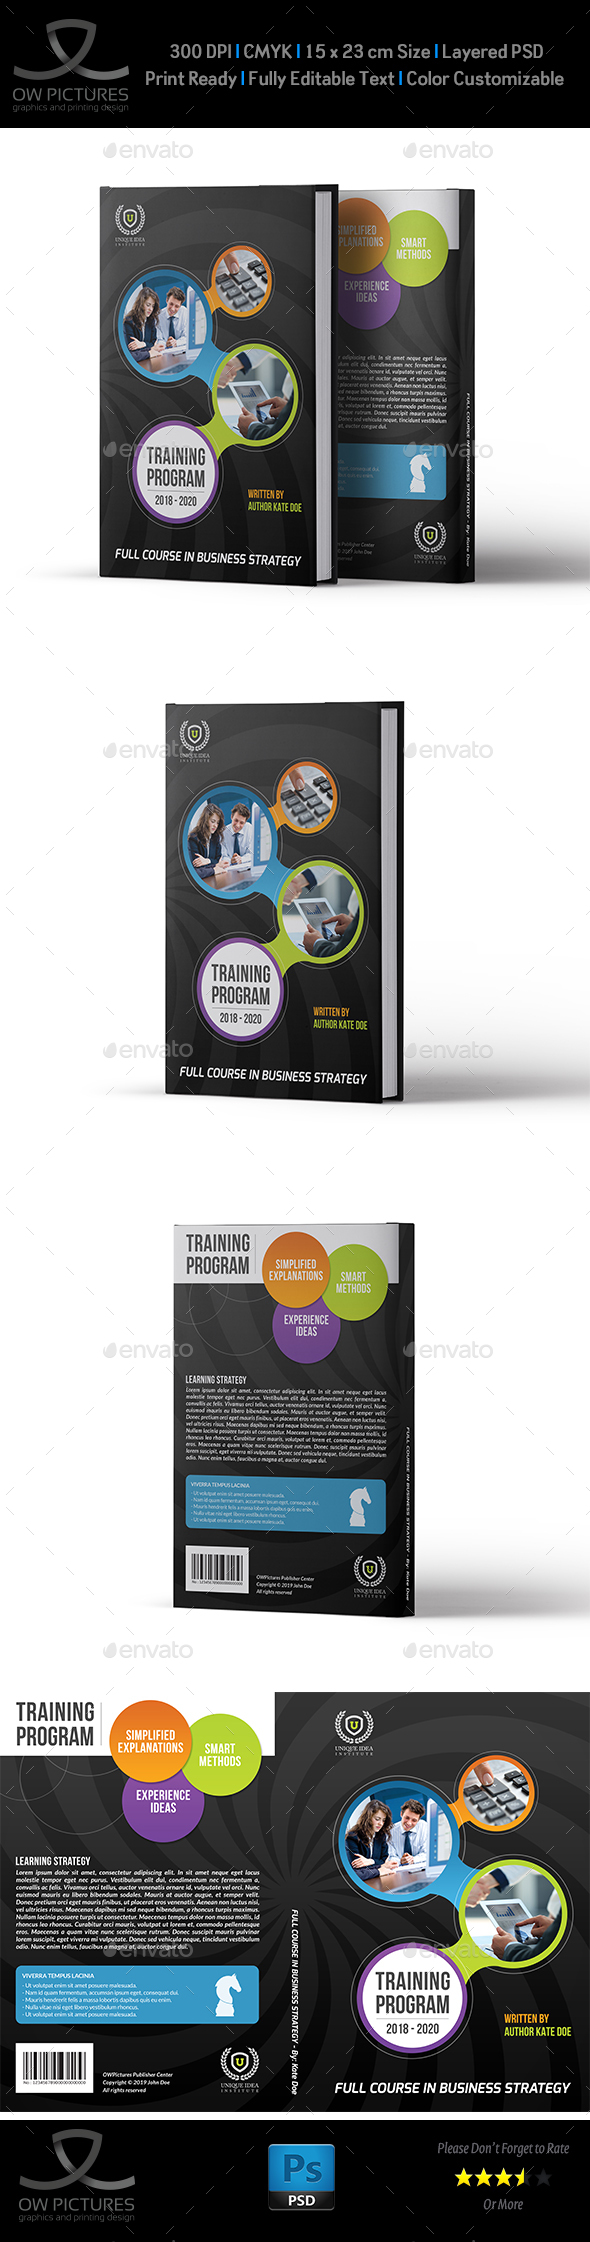 Book Cover Template Vol.2 - Miscellaneous Print Templates